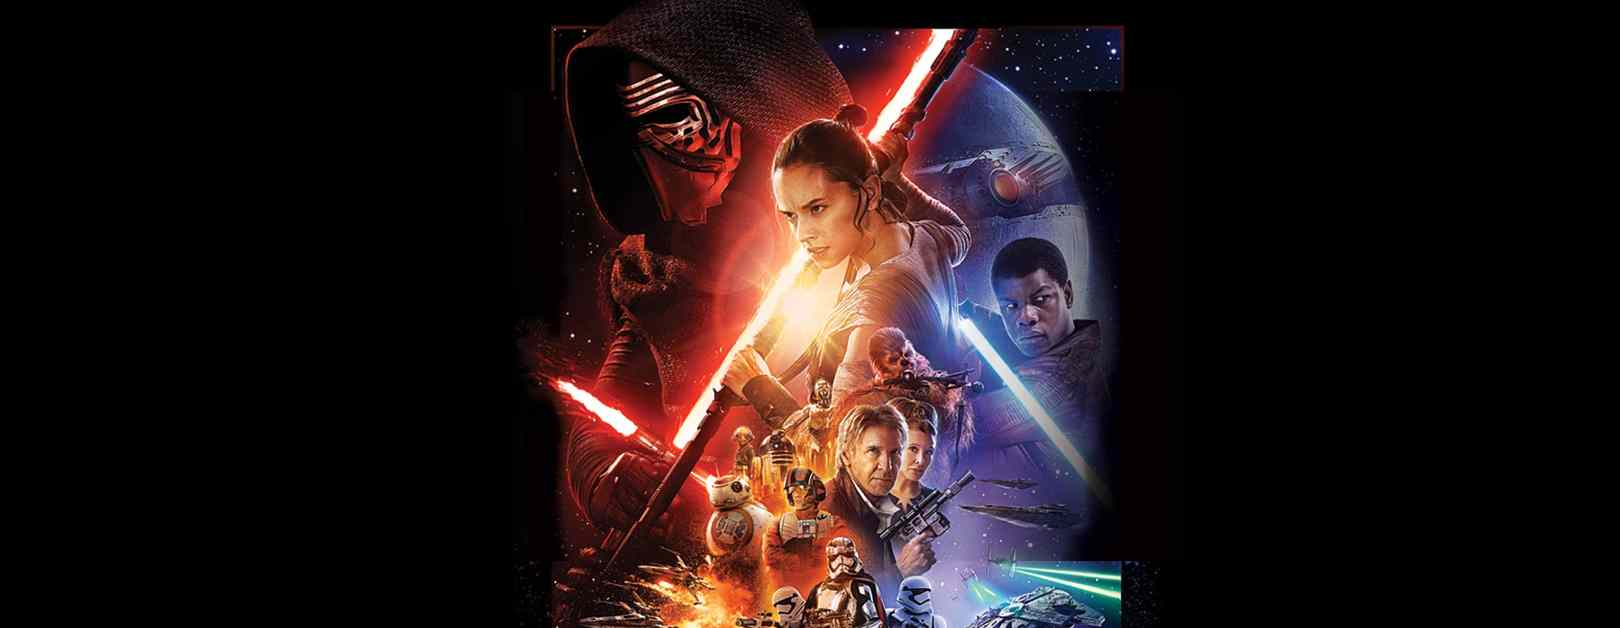 Star Wars: The Force Awakens – In Concert